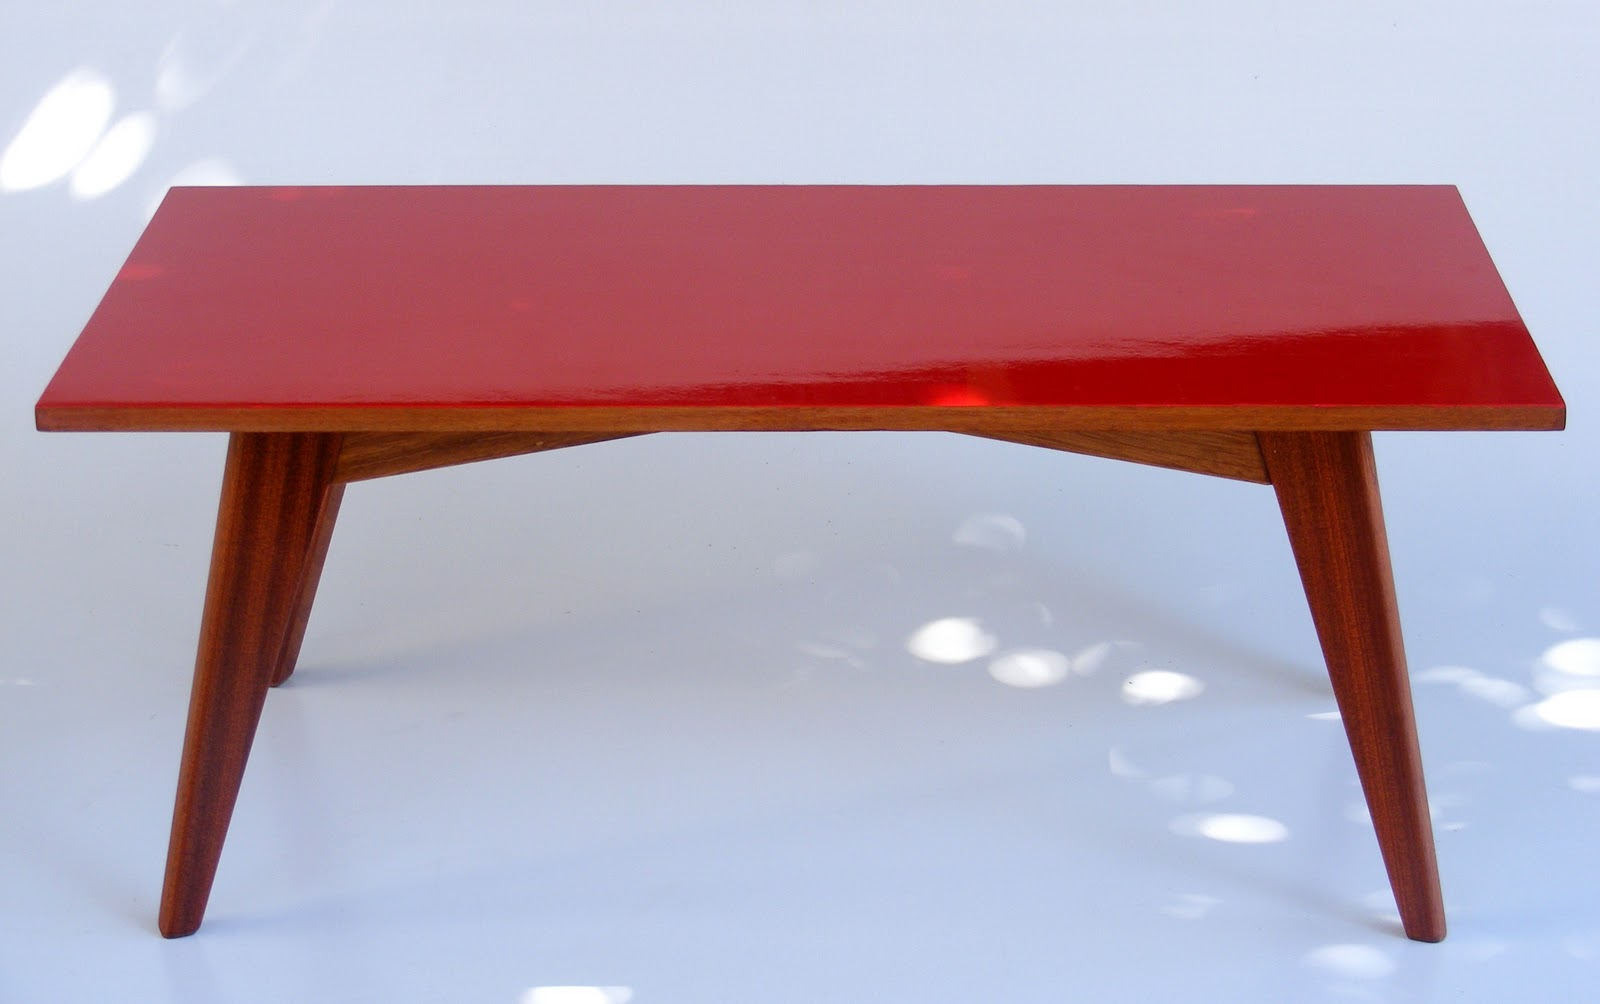 Retro Coffee Table With High Gloss Red Top